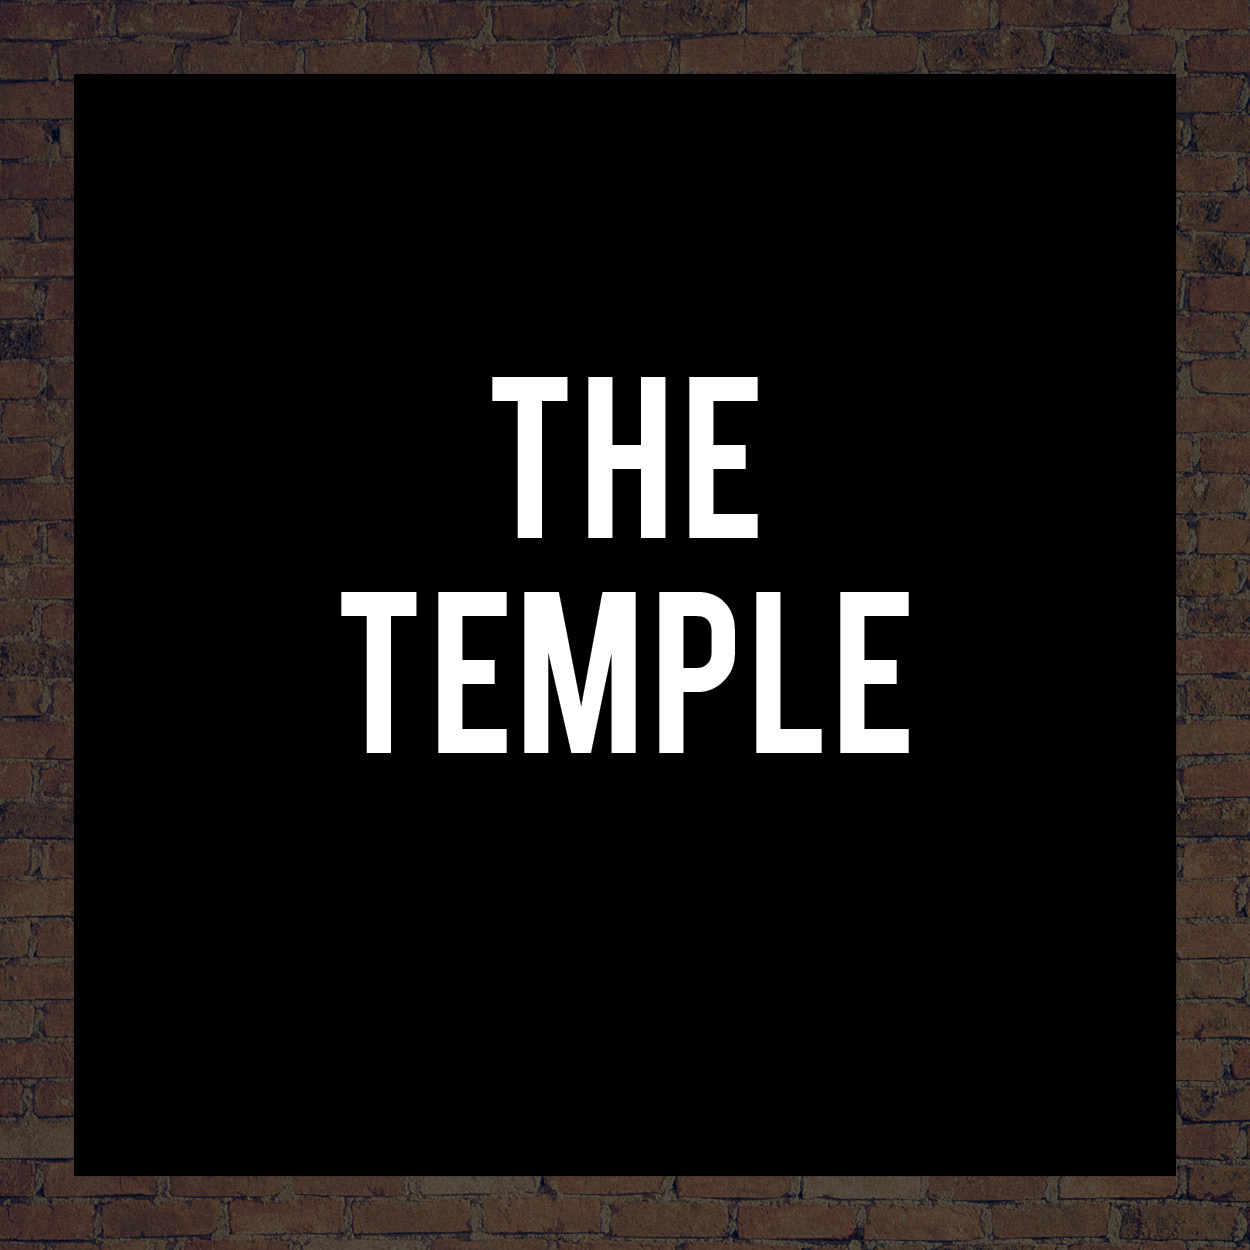 Thd temple text